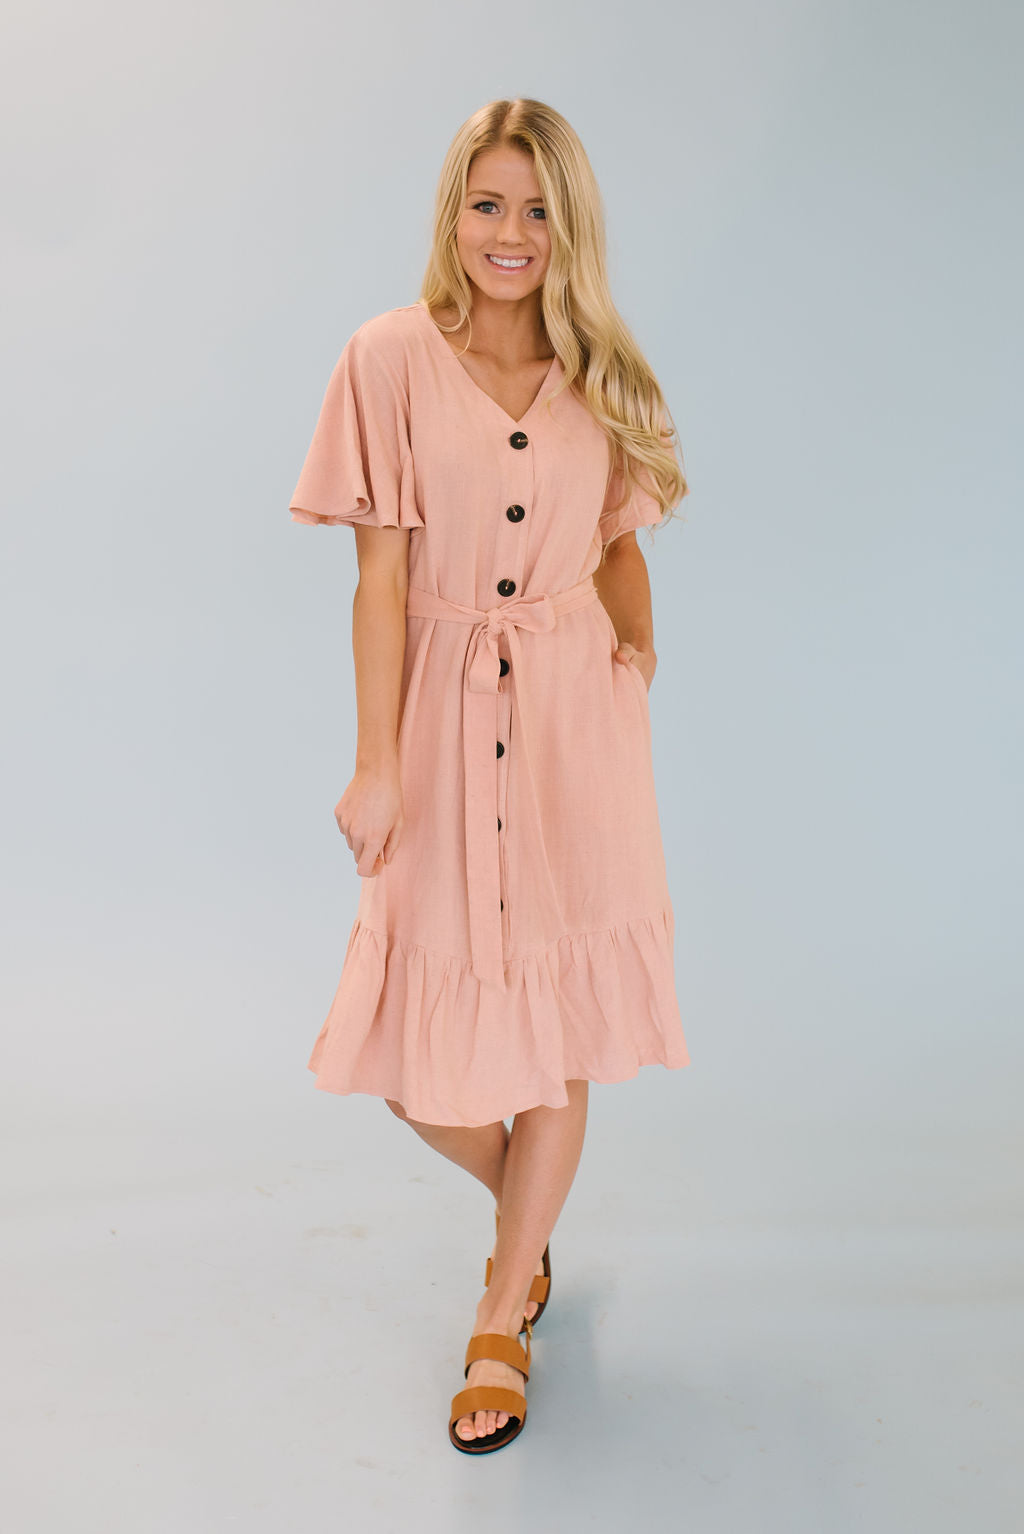 TAITE MIDI RUFFLE DRESS IN BLUSH